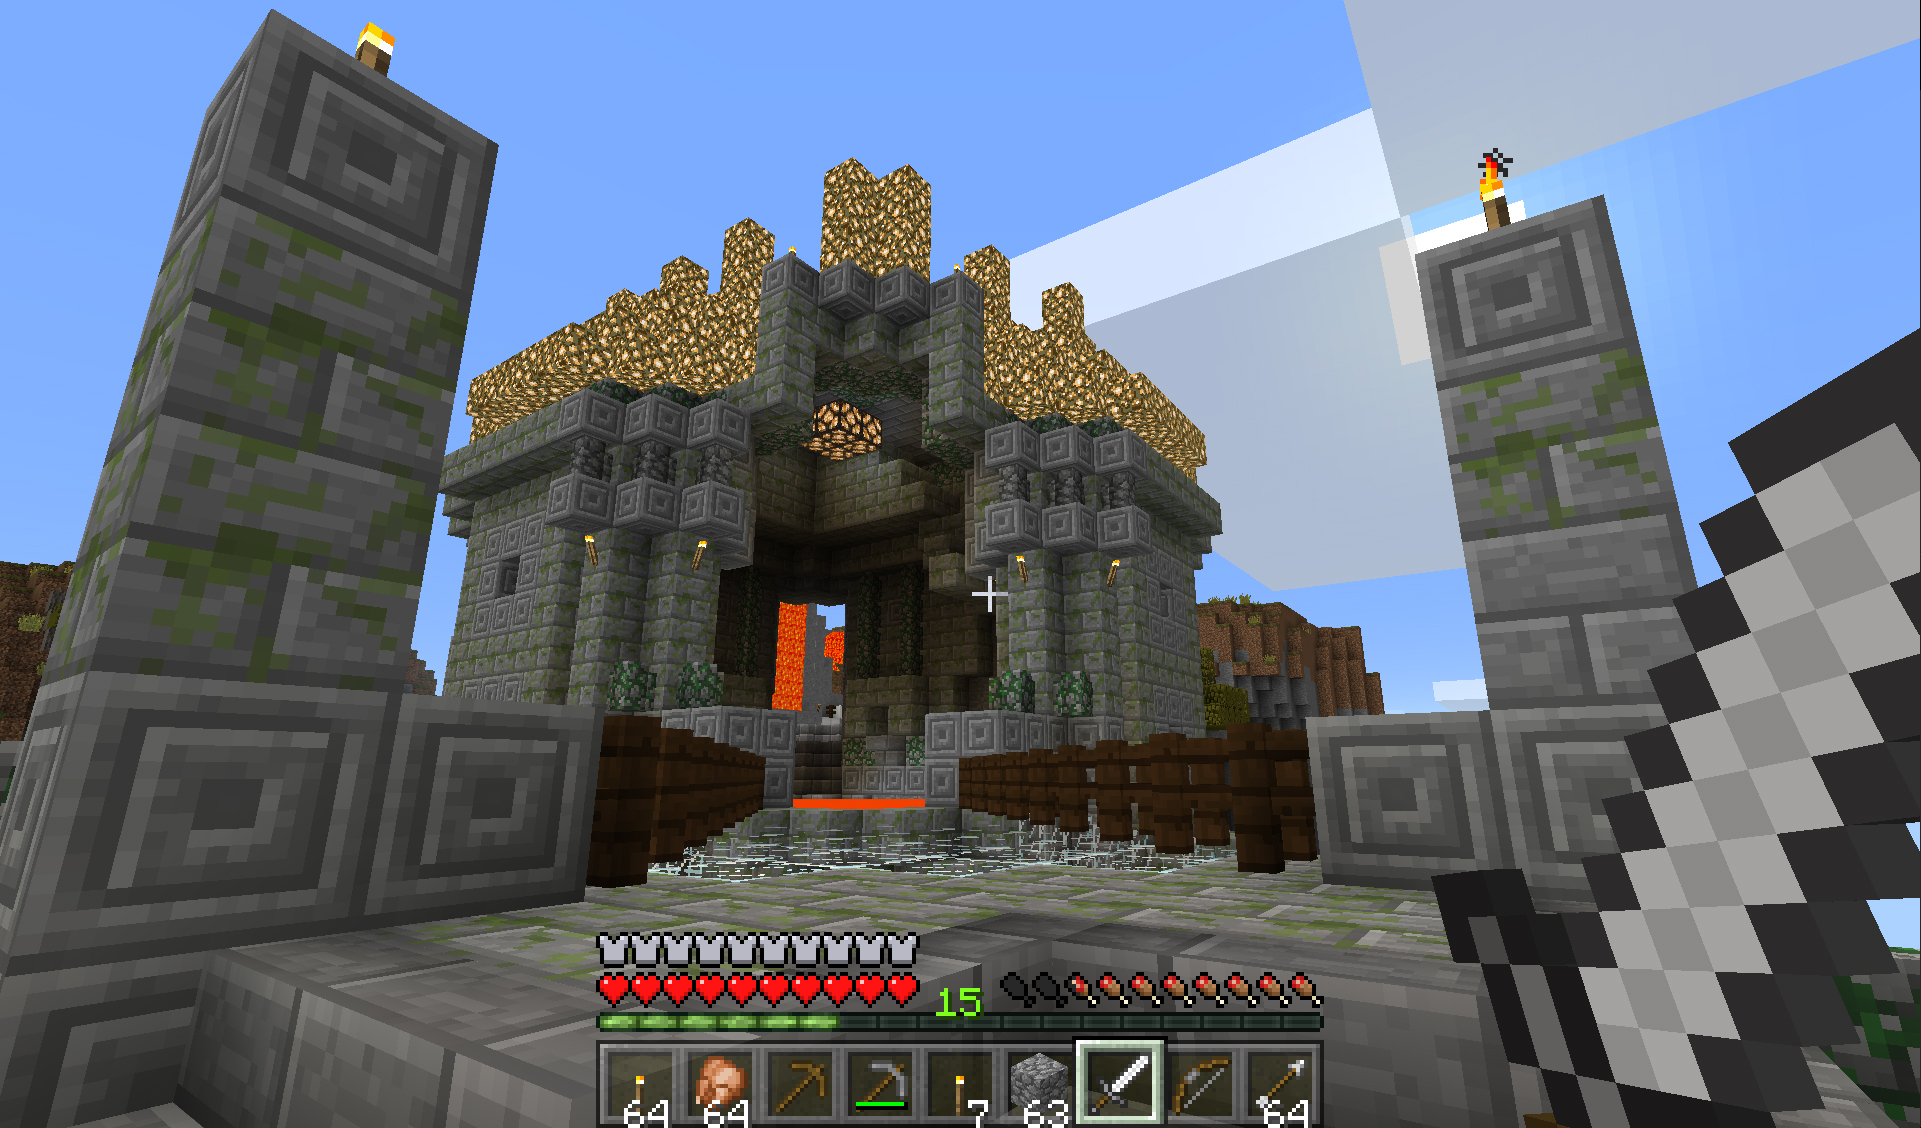 Minecraft Windows 10 Screens Show How The Games Looks Using Oculus Rift VG247